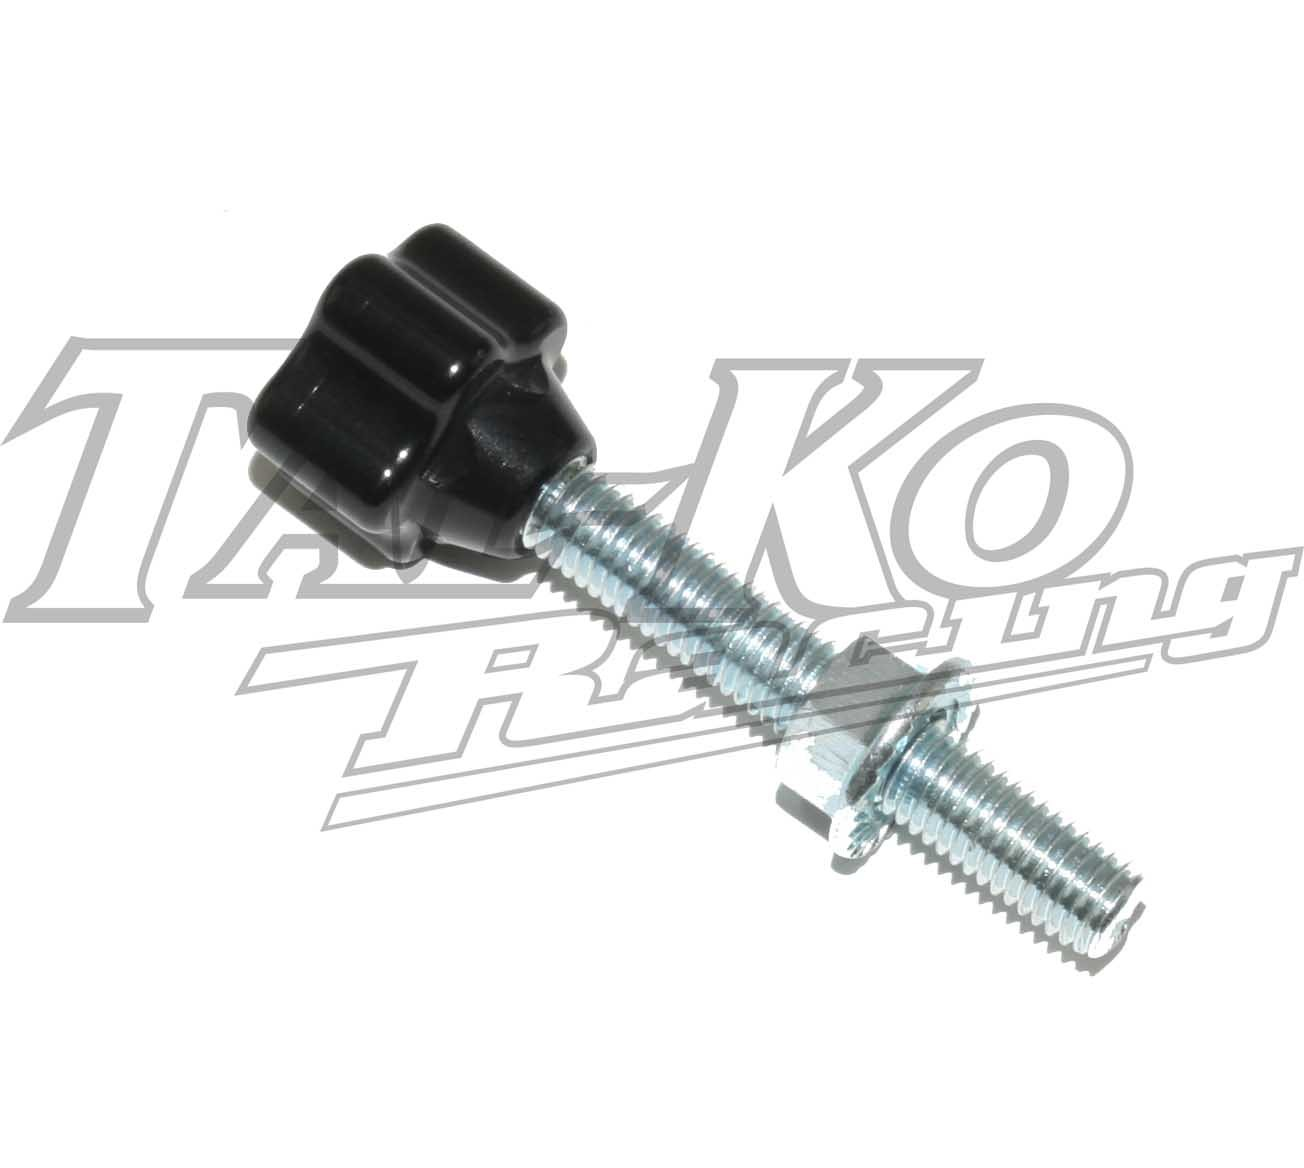 WK ENGINE MOUNT ADJUSTER BOLT M10 x 87 BLACK